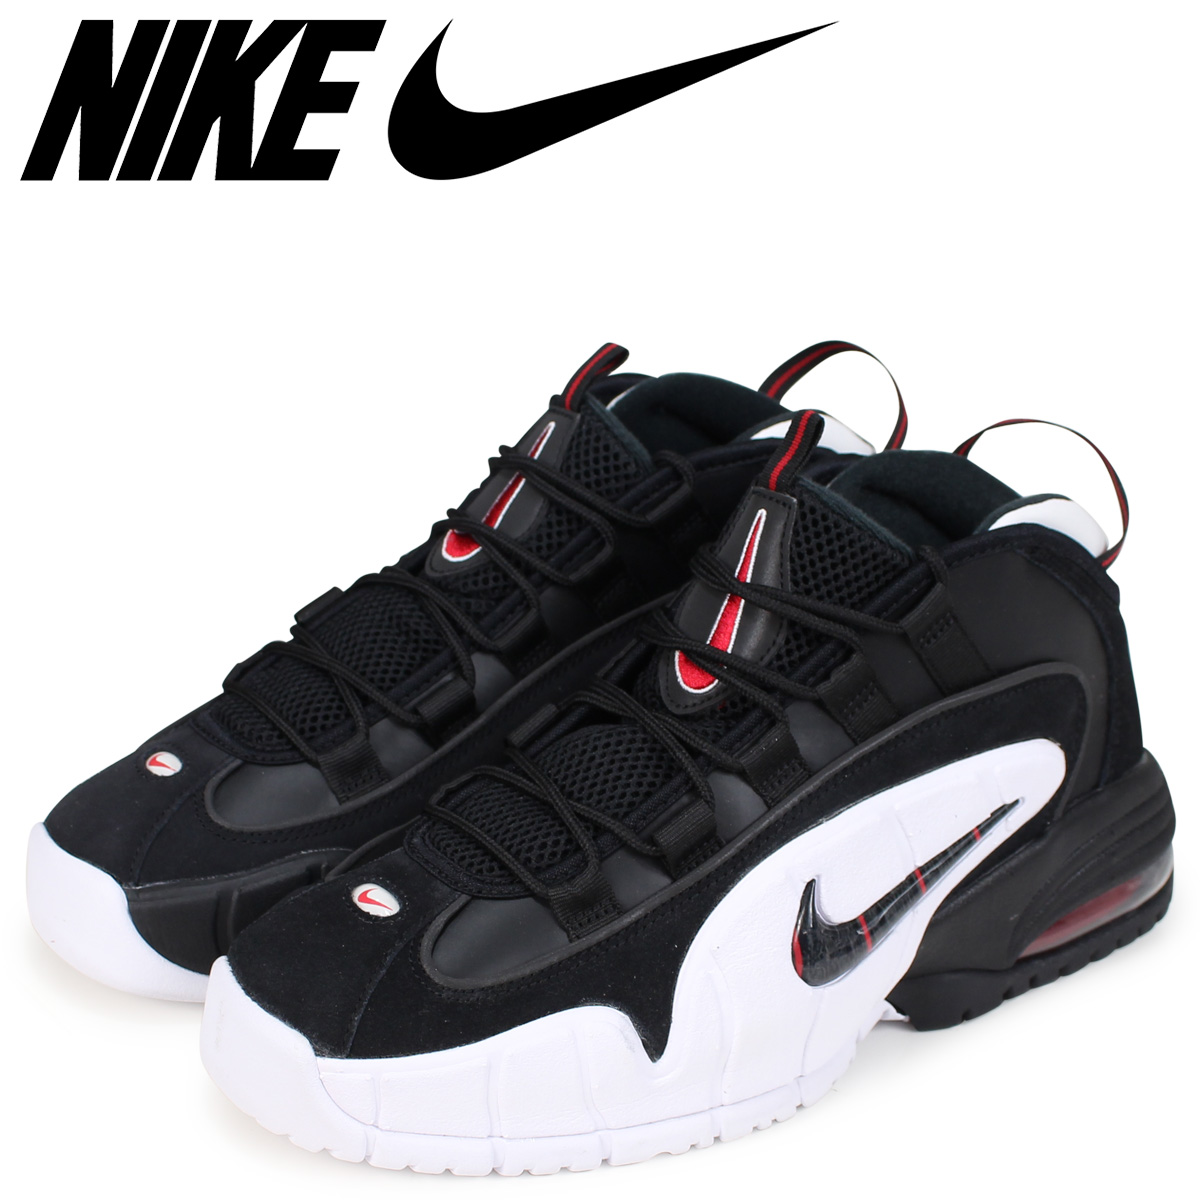 super popular b7509 d1cfd NIKE Kie Ney AMAX penny sneakers men AIR MAX PENNY 685,153-003 black  load  planned Shinnyu load in reservation product 10 10 containing